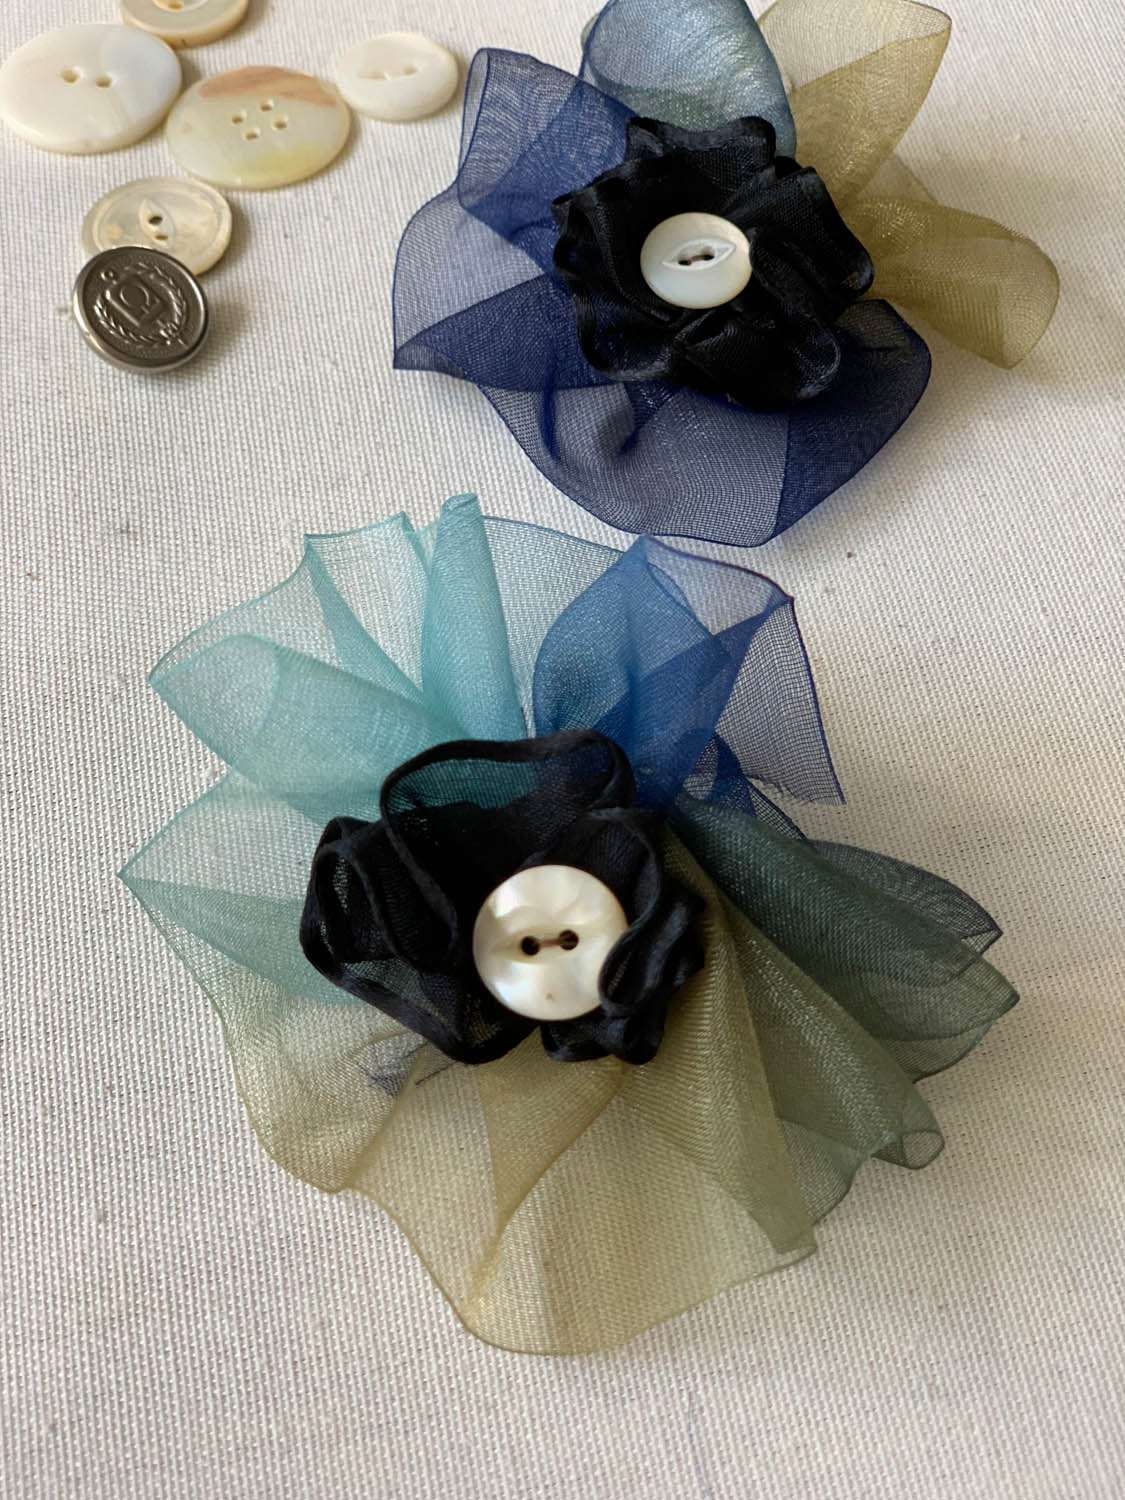 Step by Step Simple Ribbon Flowers for Embellishing - Turn beautiful lengths of ribbons plus pretty vintage, antique, or purchased buttons into beautiful embellishments for home decor or fashion accessories with this simple technique.